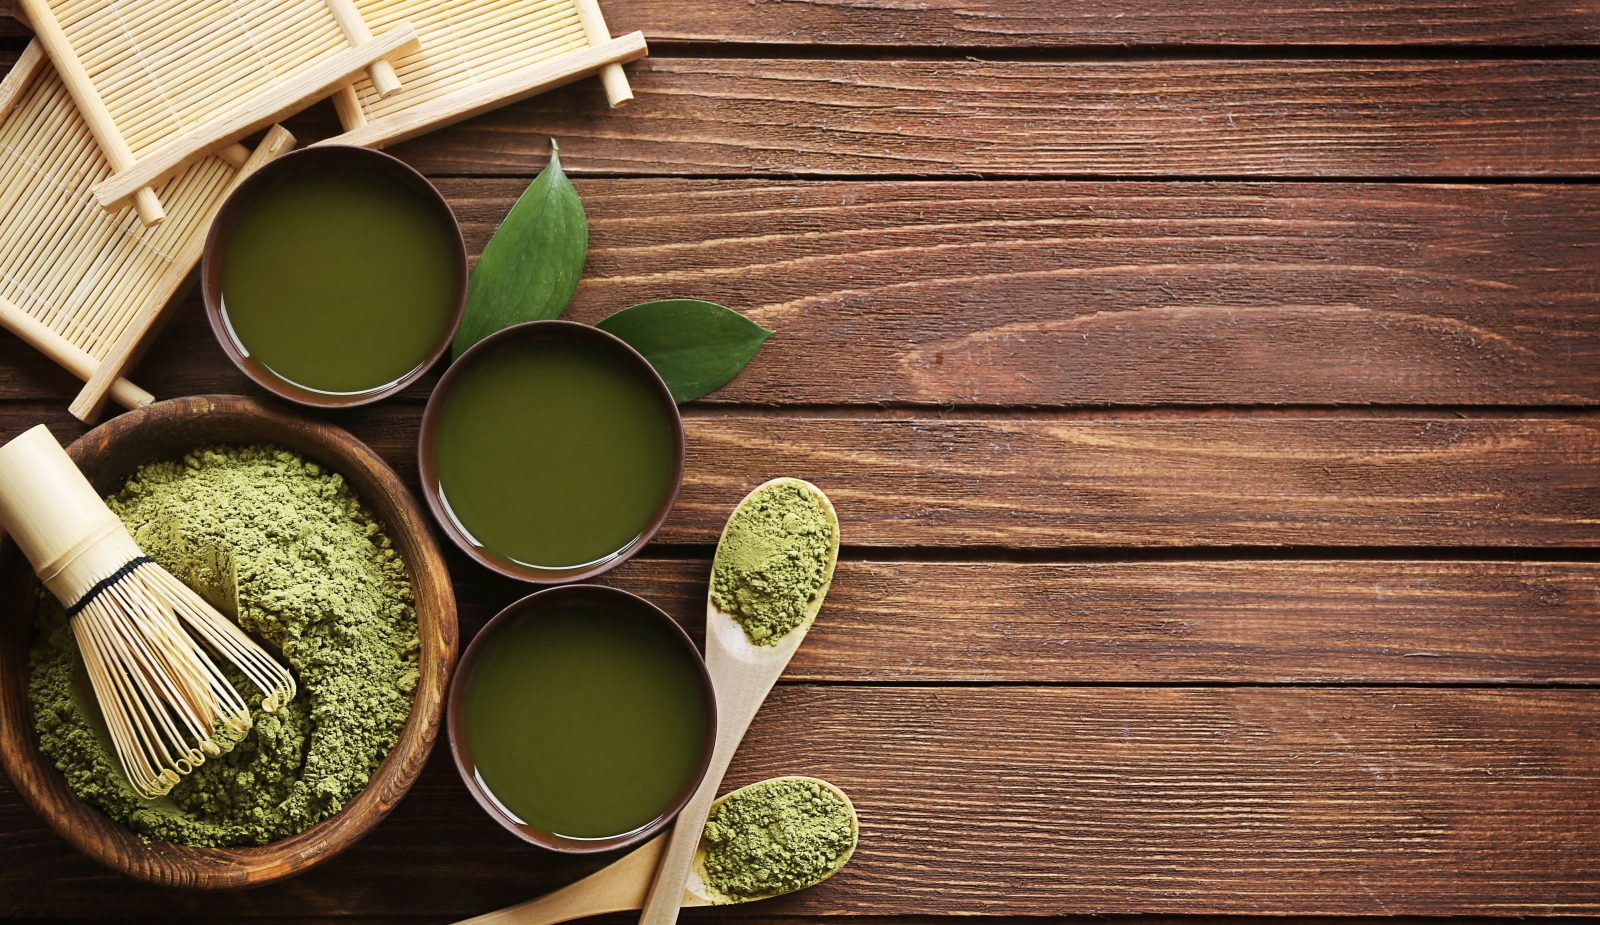 The Best Anti-Inflammatory Ingredients You Should Look Out For